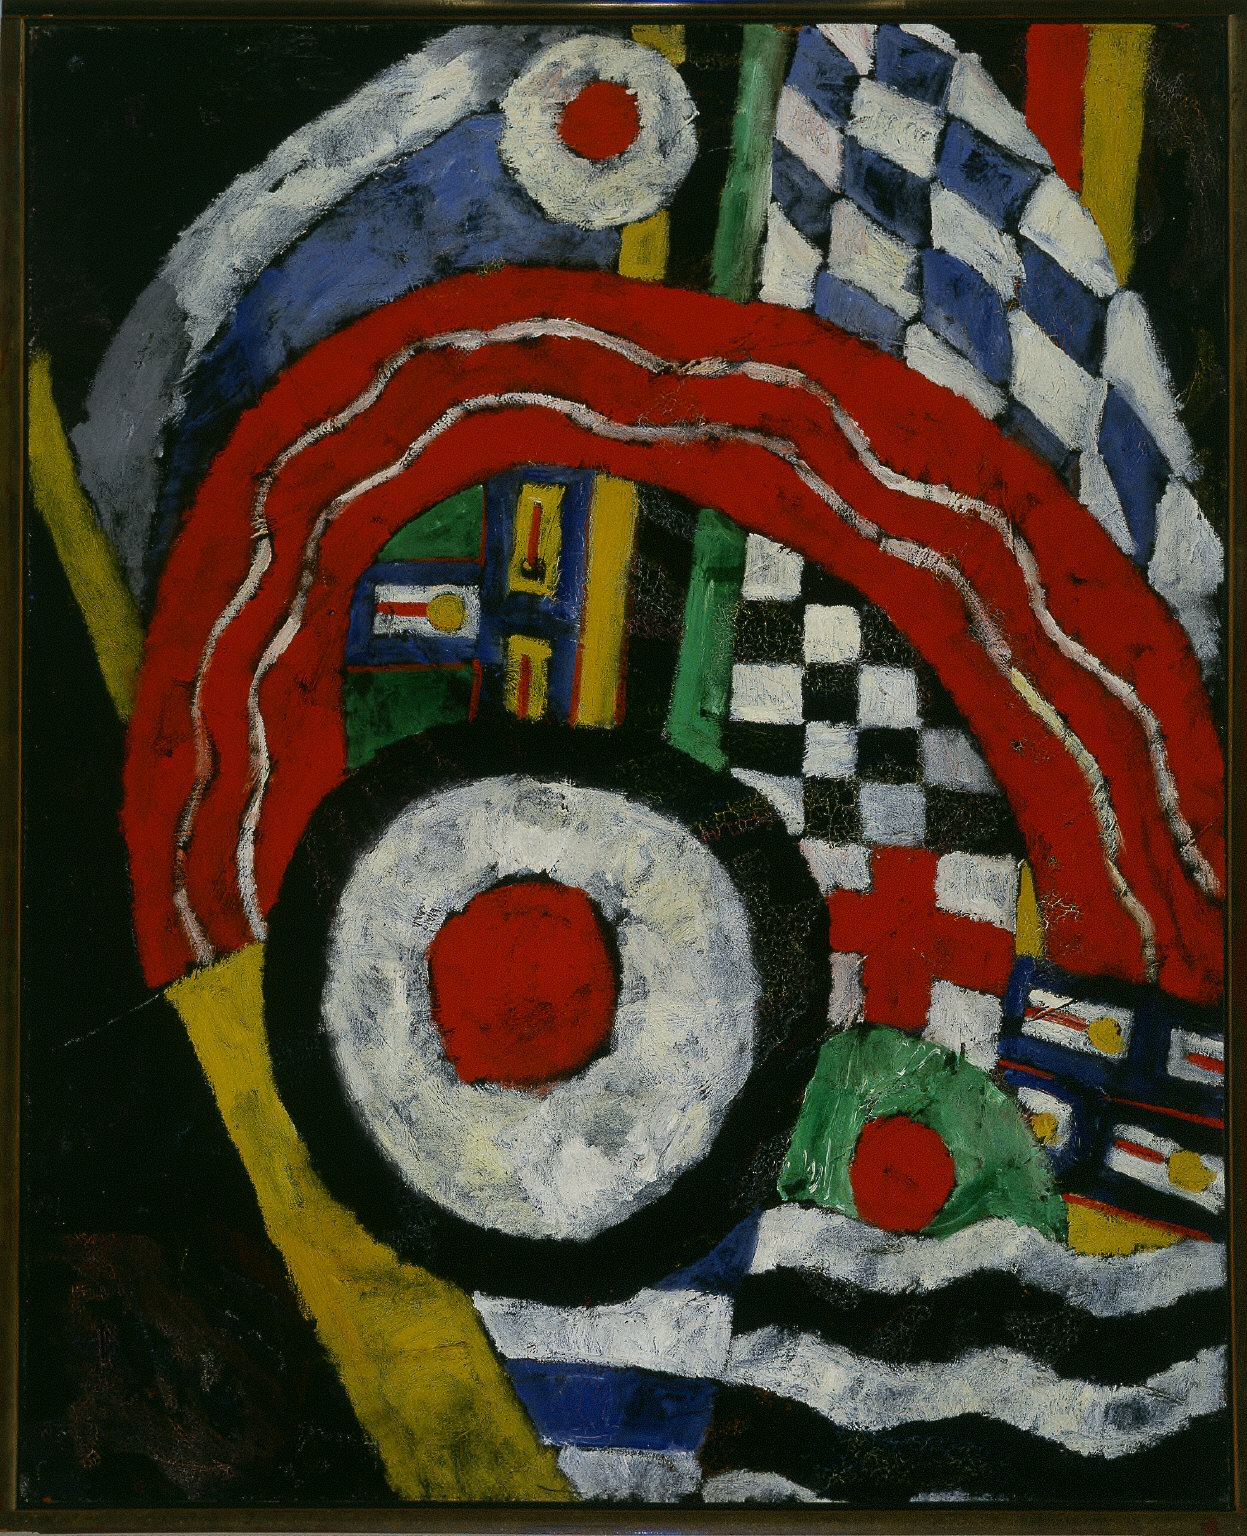 Painting No. 46